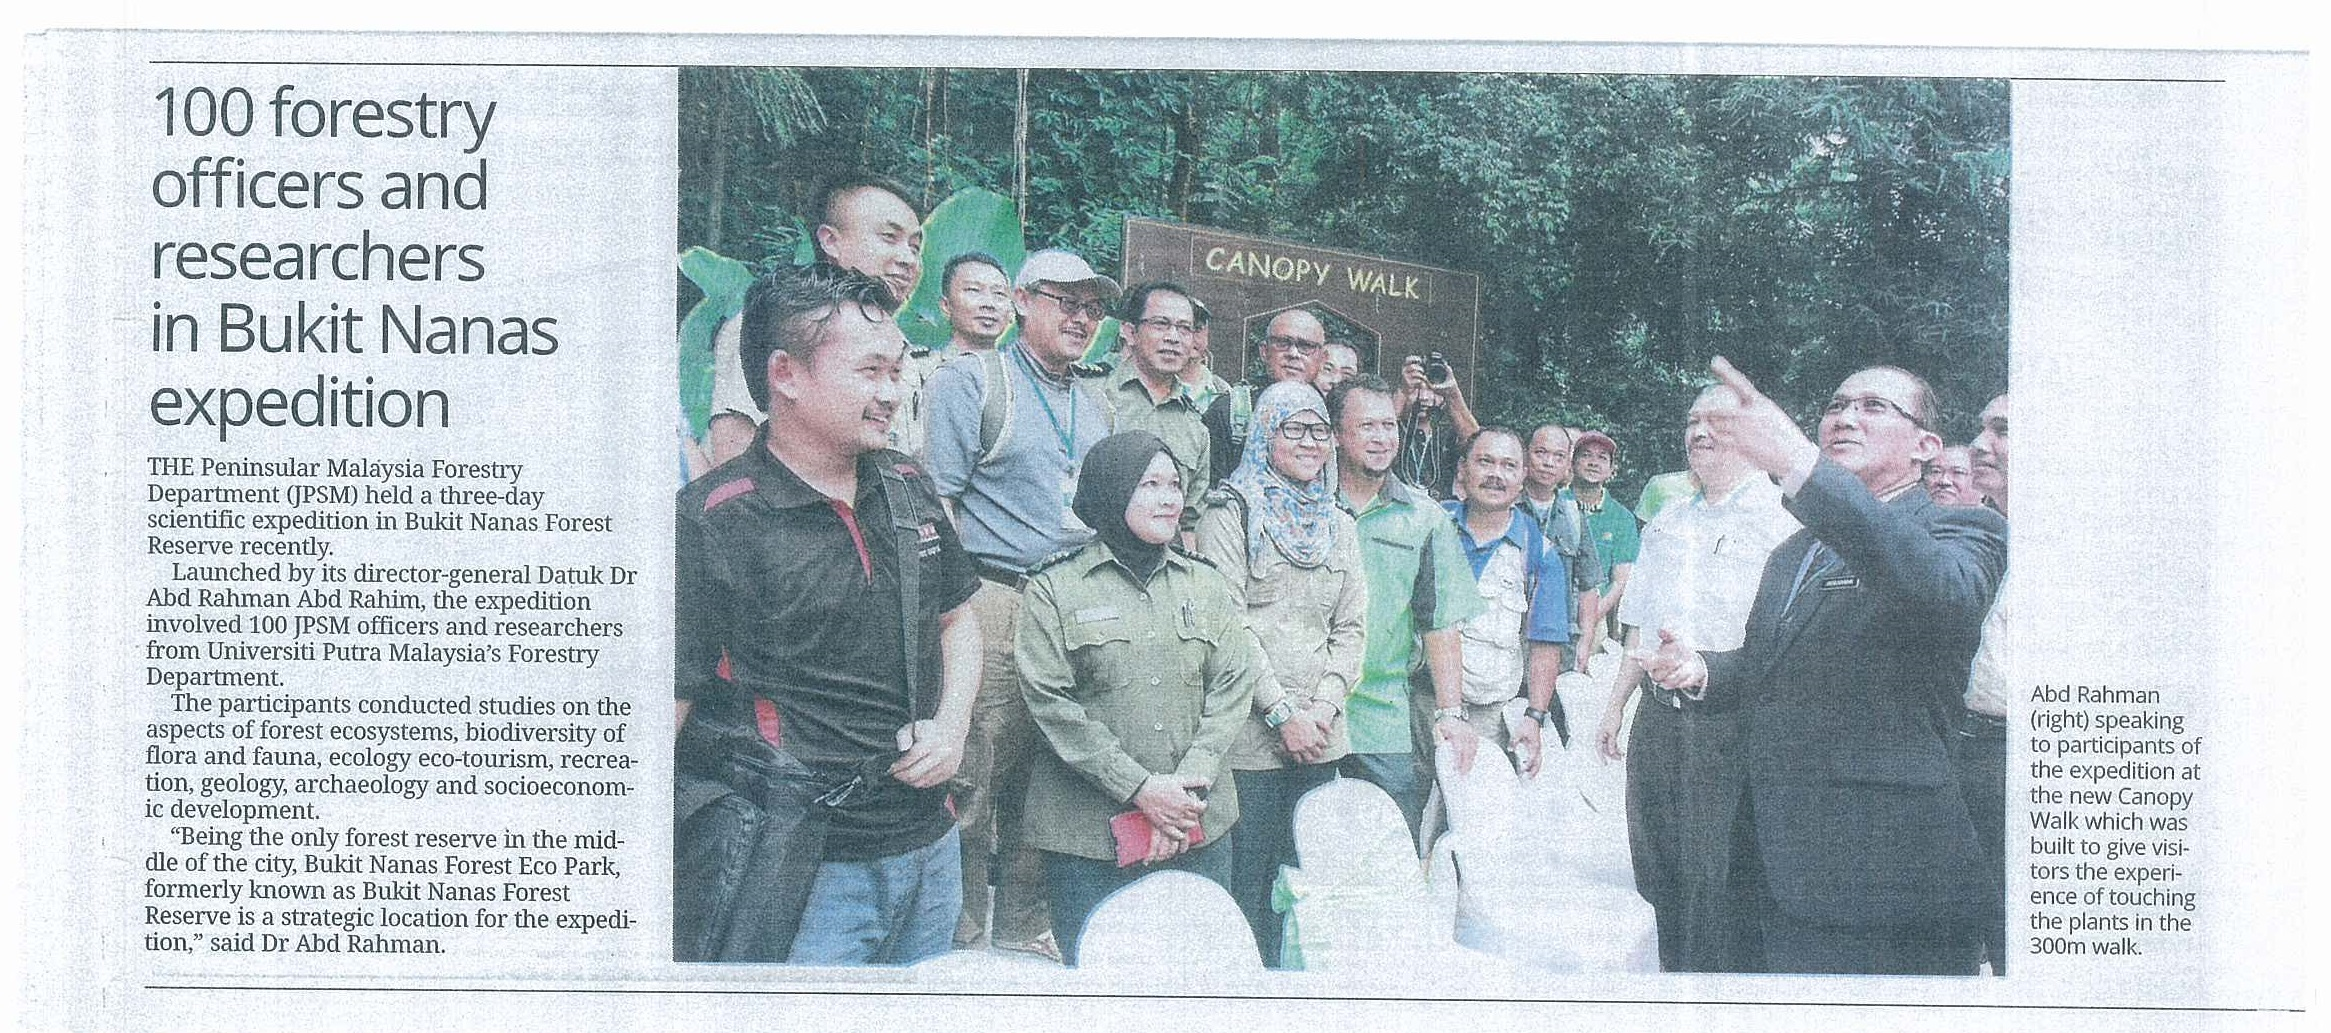 The Star 12 Okt 2015